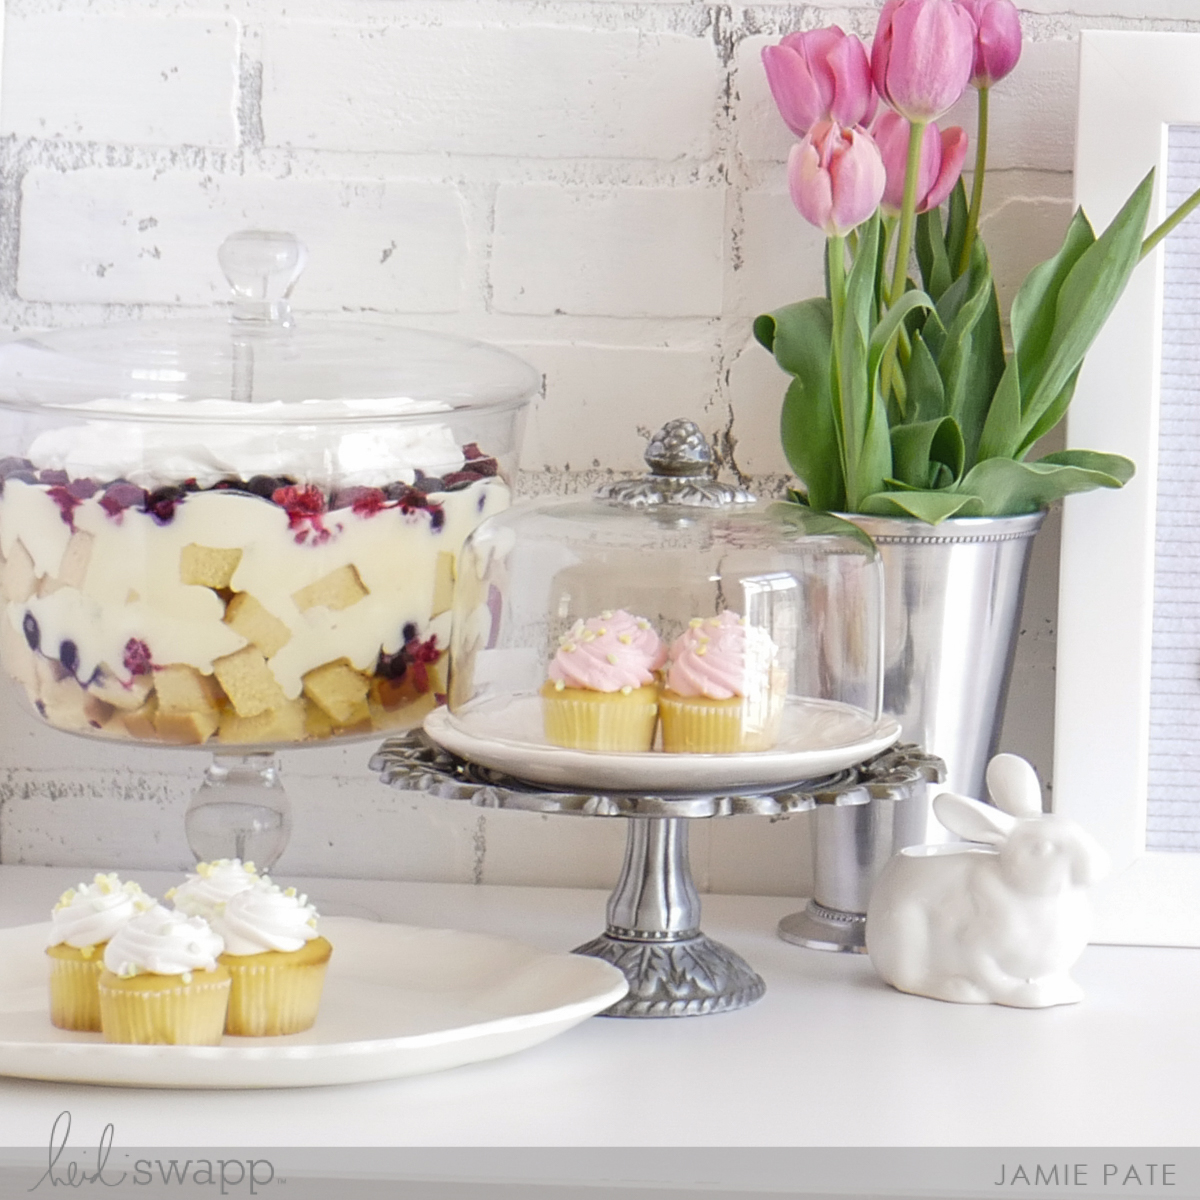 Easter Dessert Table and Heidi Swapp Letterboard by Jamie Pate | @jamiepate for @heidiswapp